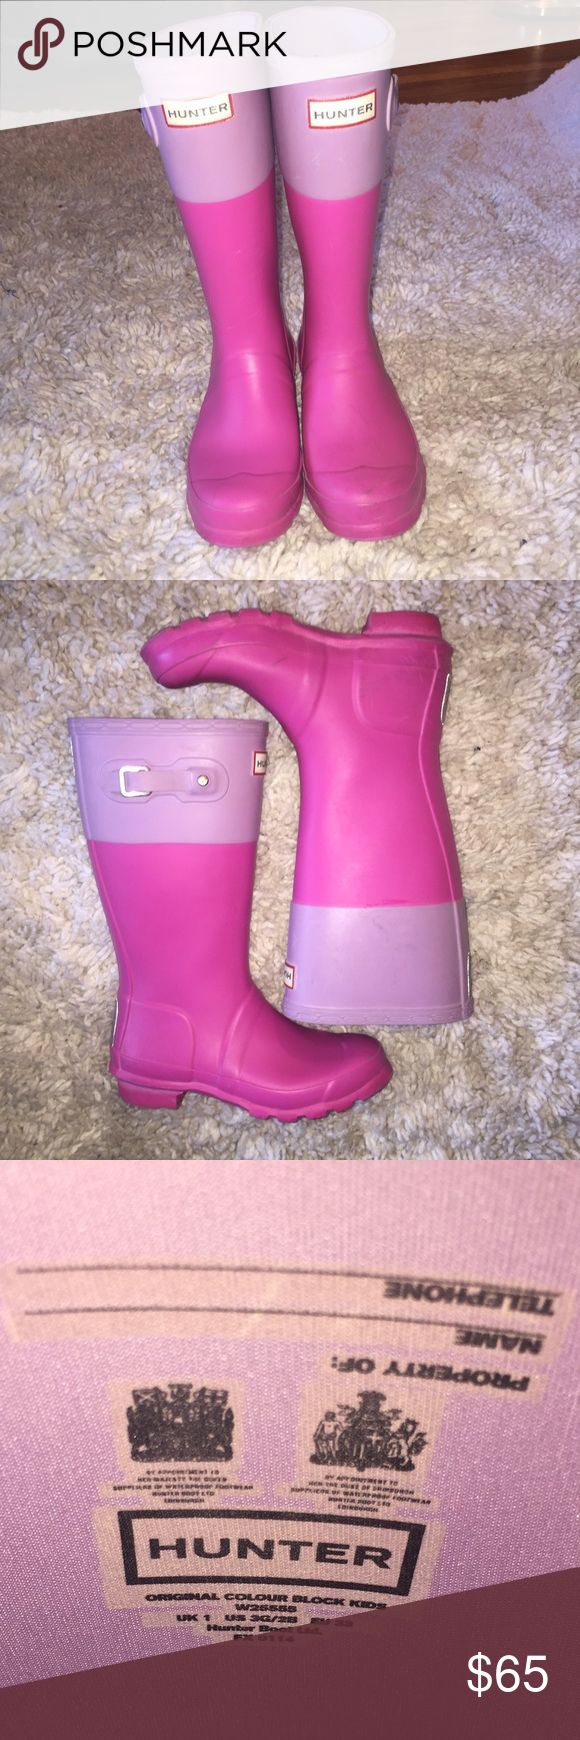 Girls' Hunter boots...Size 3 Girls' Hunter boots...pink with purple band around the top...Size 3 from a smoke free home! Hunter Shoes Rain & Snow Boots